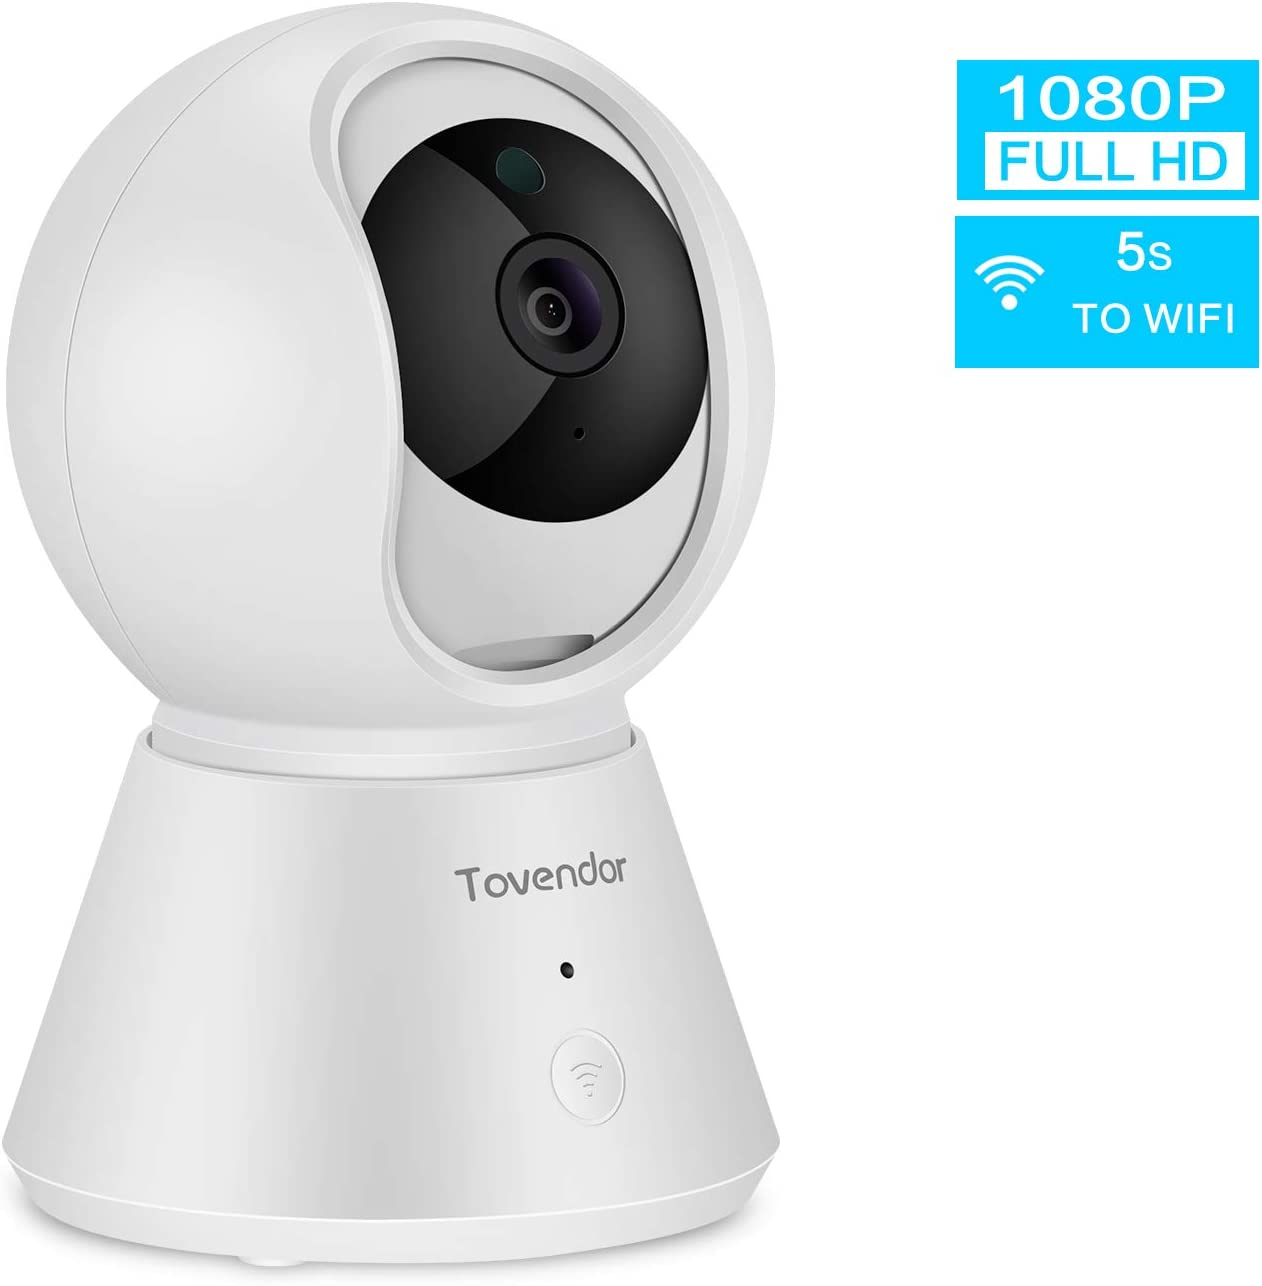 Tovendor 2.4G WiFi Home Security Camera, 1080P Motion Tracking Room Monitor with Sound Detection for Baby, Pet and Elderly, Super Clear IR Night Vision, Two Way Audio